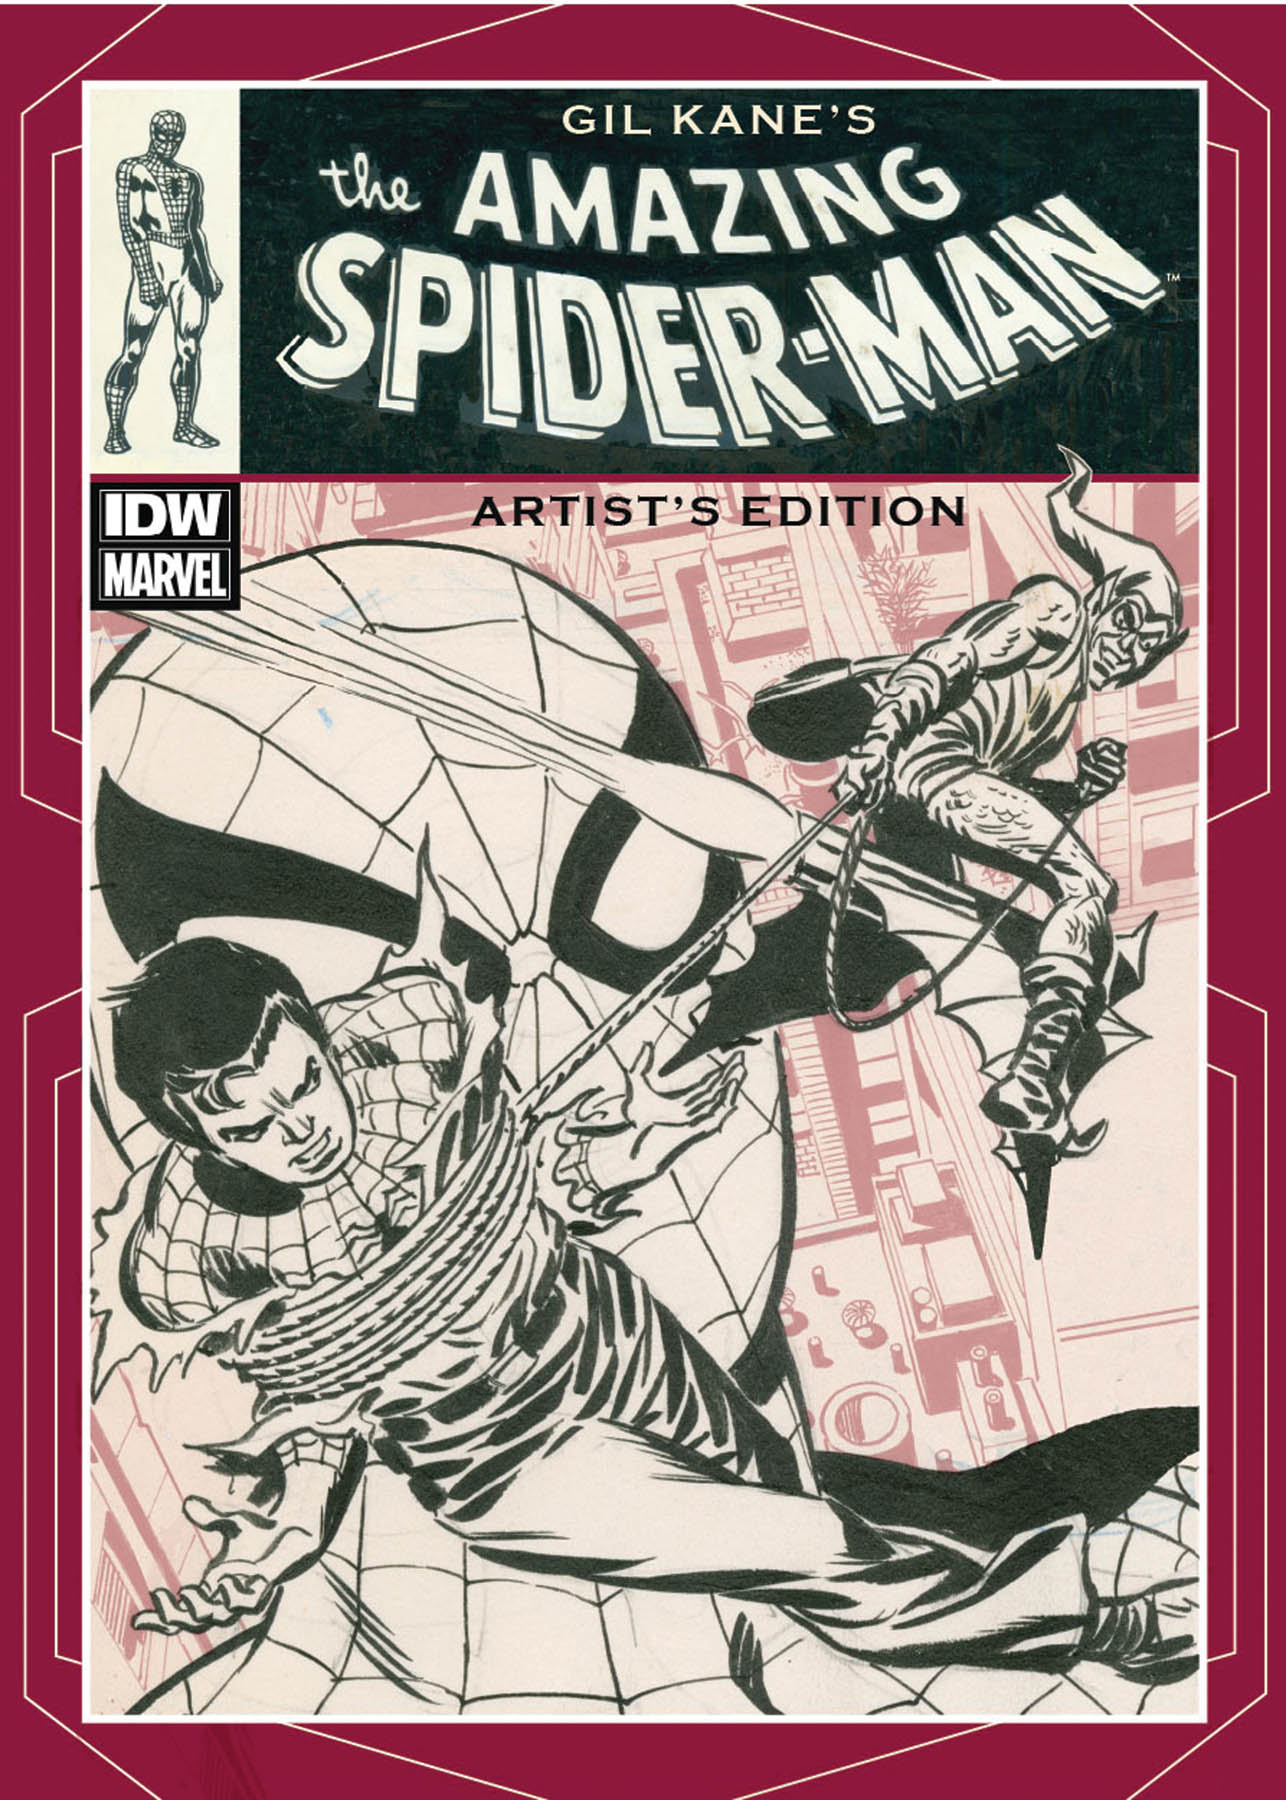 Gil Kane's The Amazing Spider Man